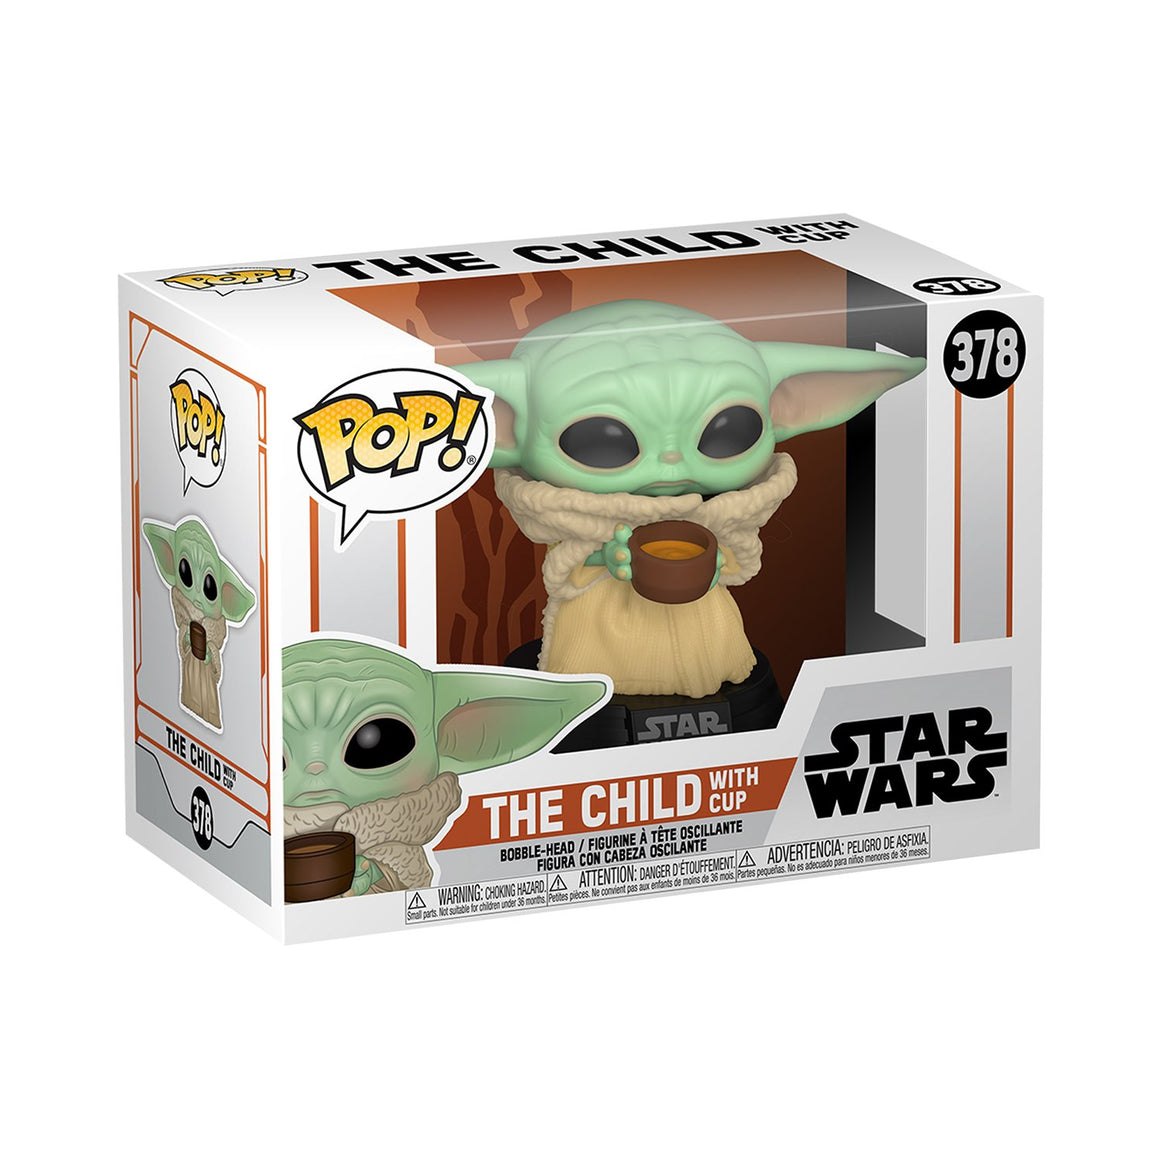 Star Wars Mandalorian The Child with Cup POP Toy Figure by Funko